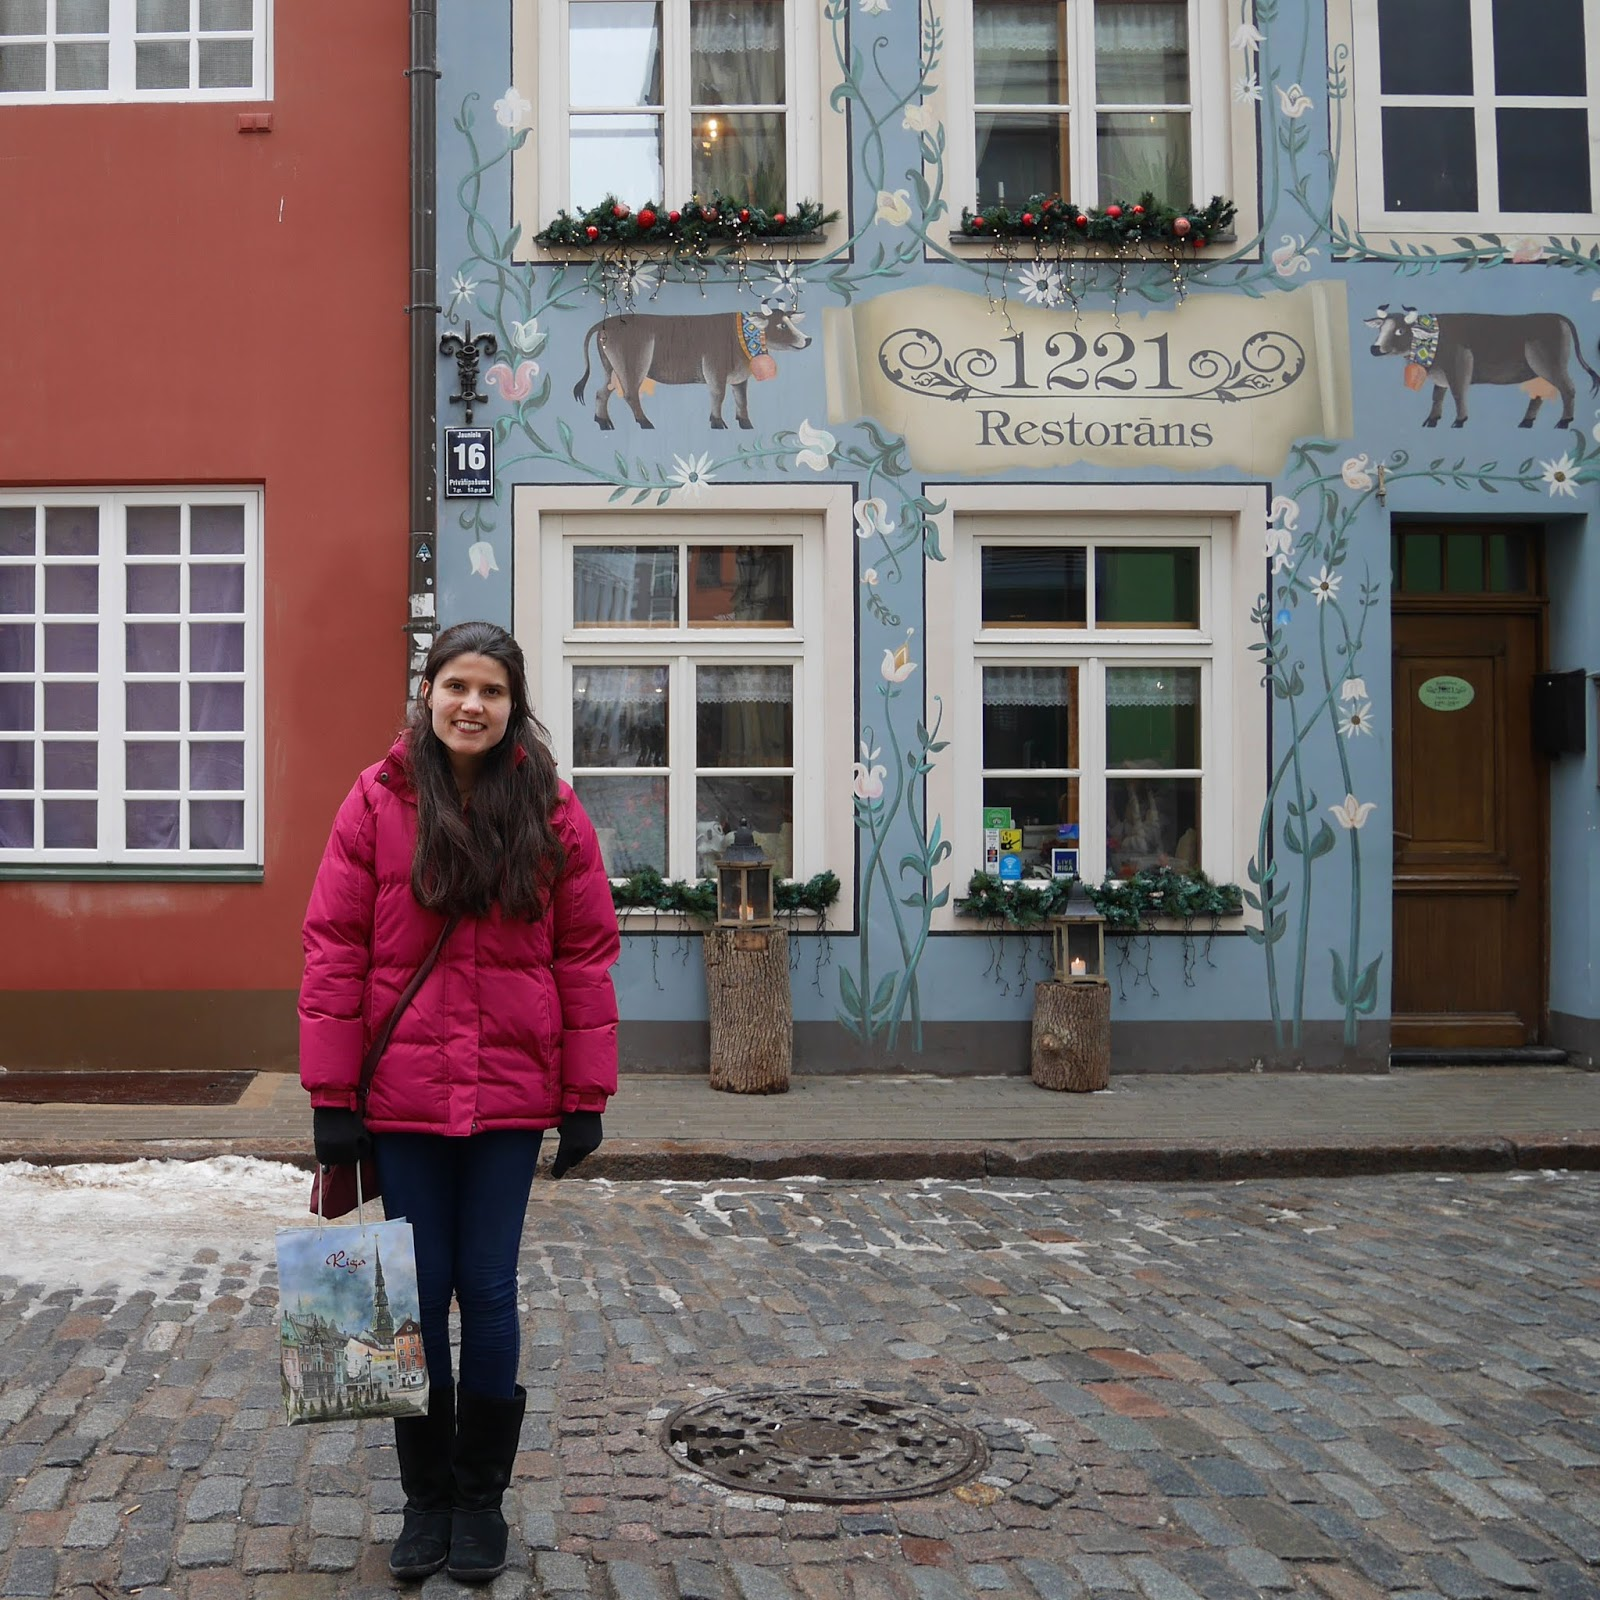 Sightseeing in Riga - Kat Last